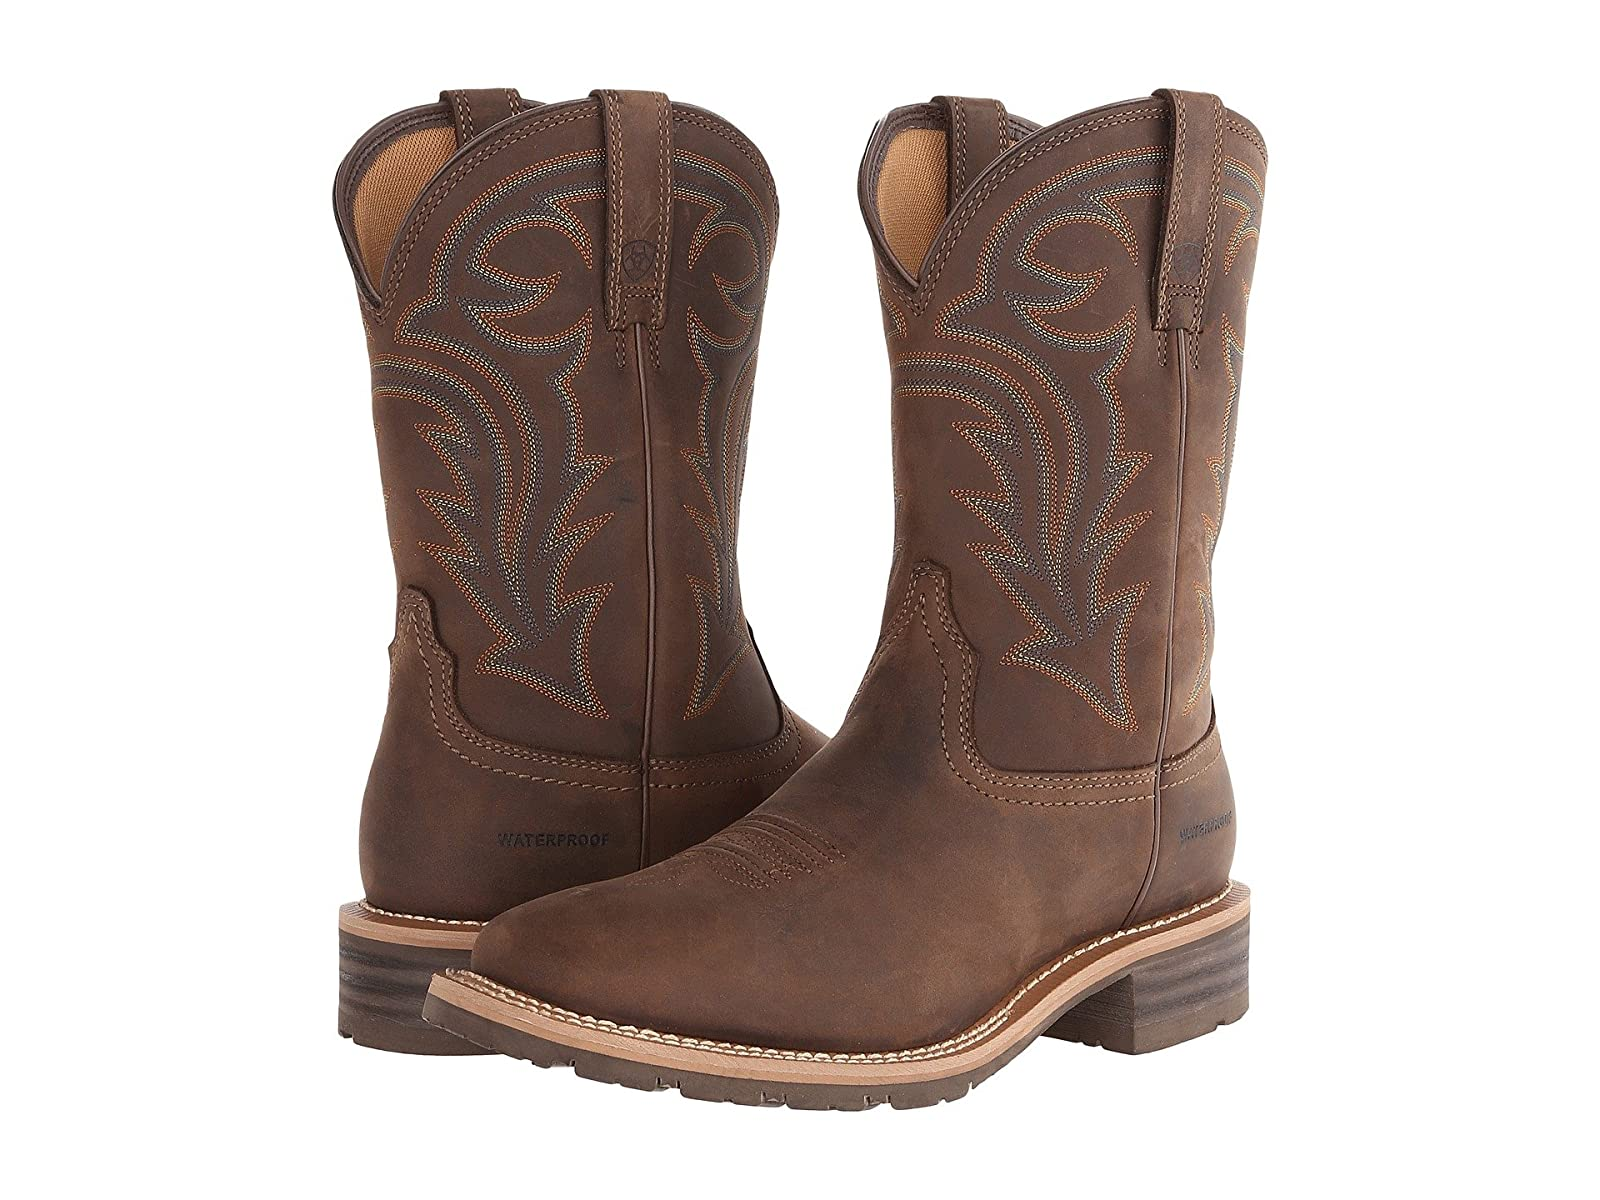 Ariat Hybrid RancherSelling fashionable and eye-catching shoes